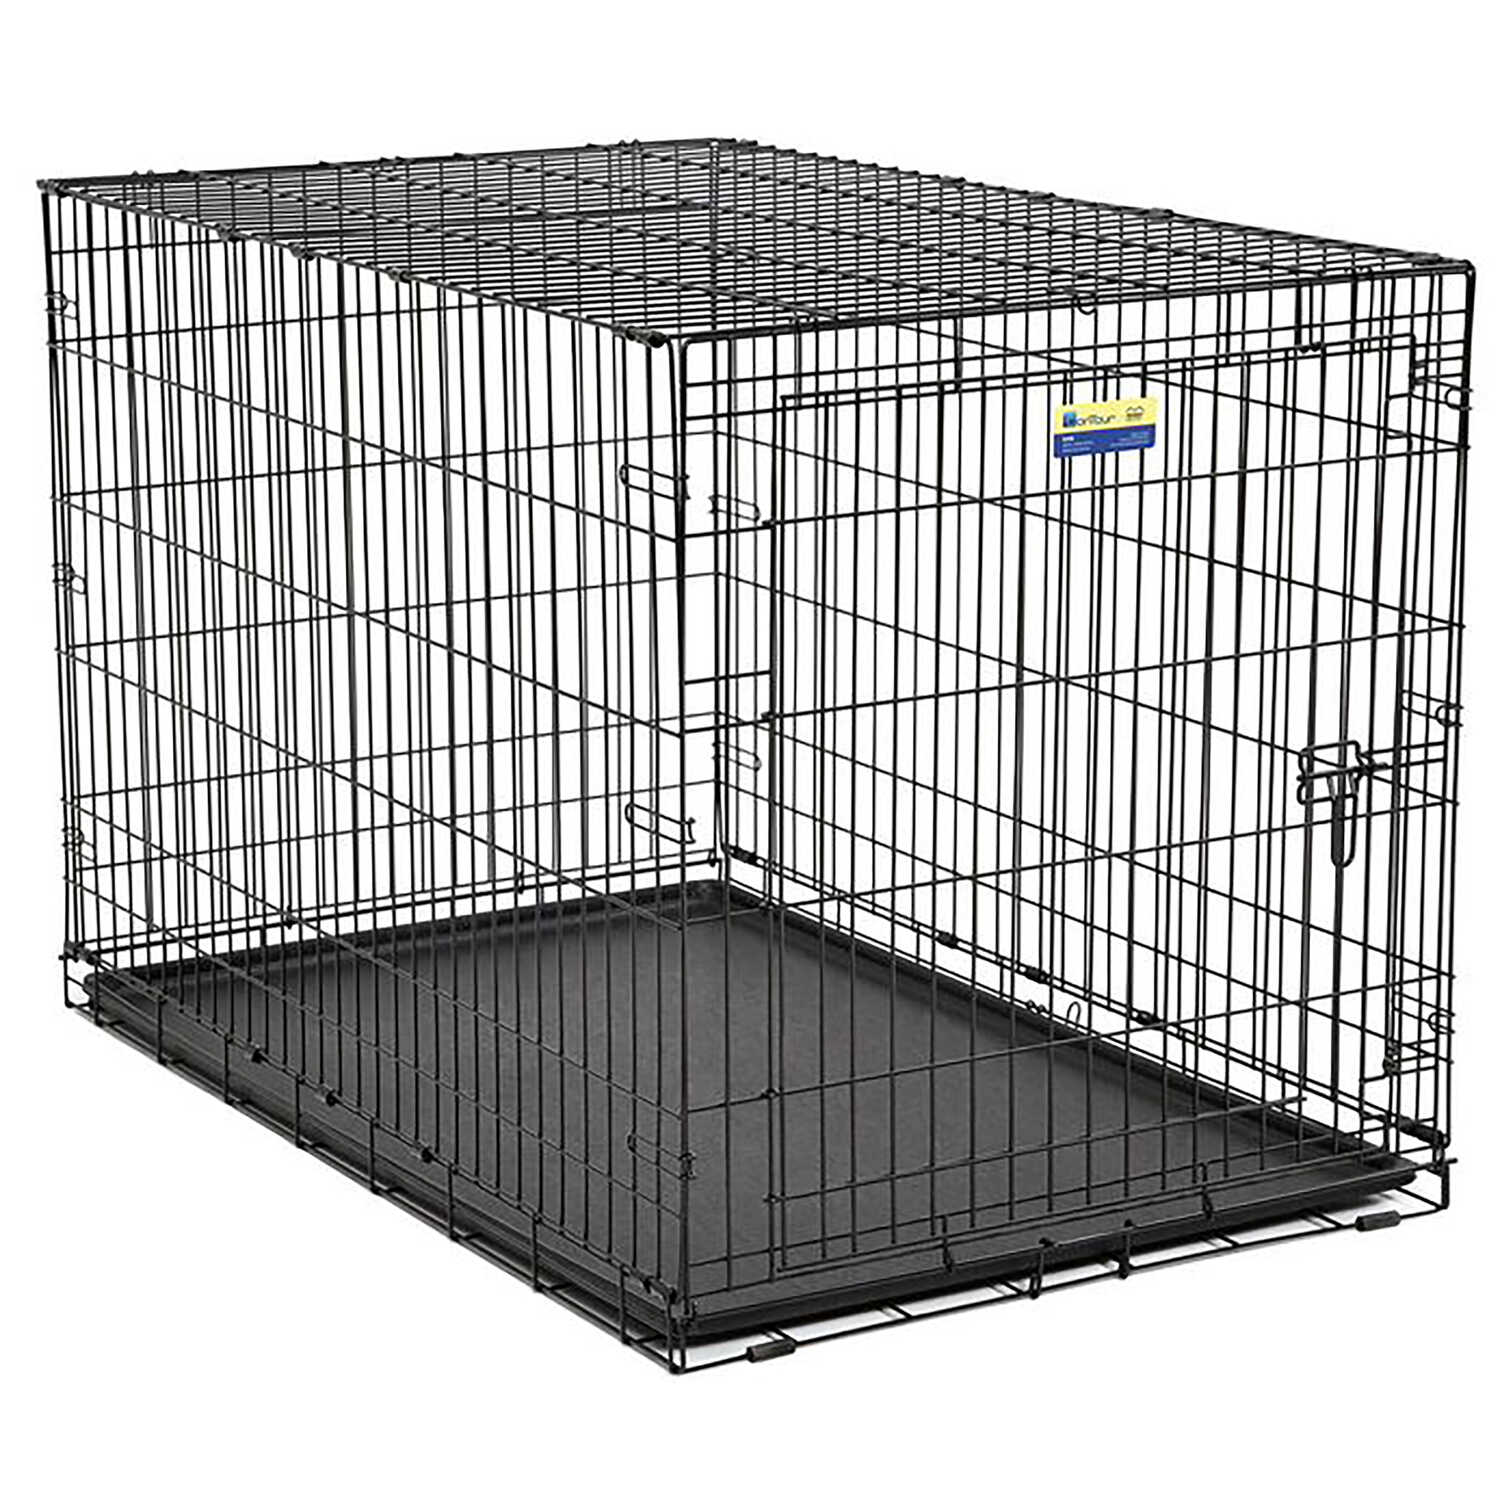 Contour  Medium  Steel  Dog Crate  24.8 in. H x 23 in. W x 36 in. D